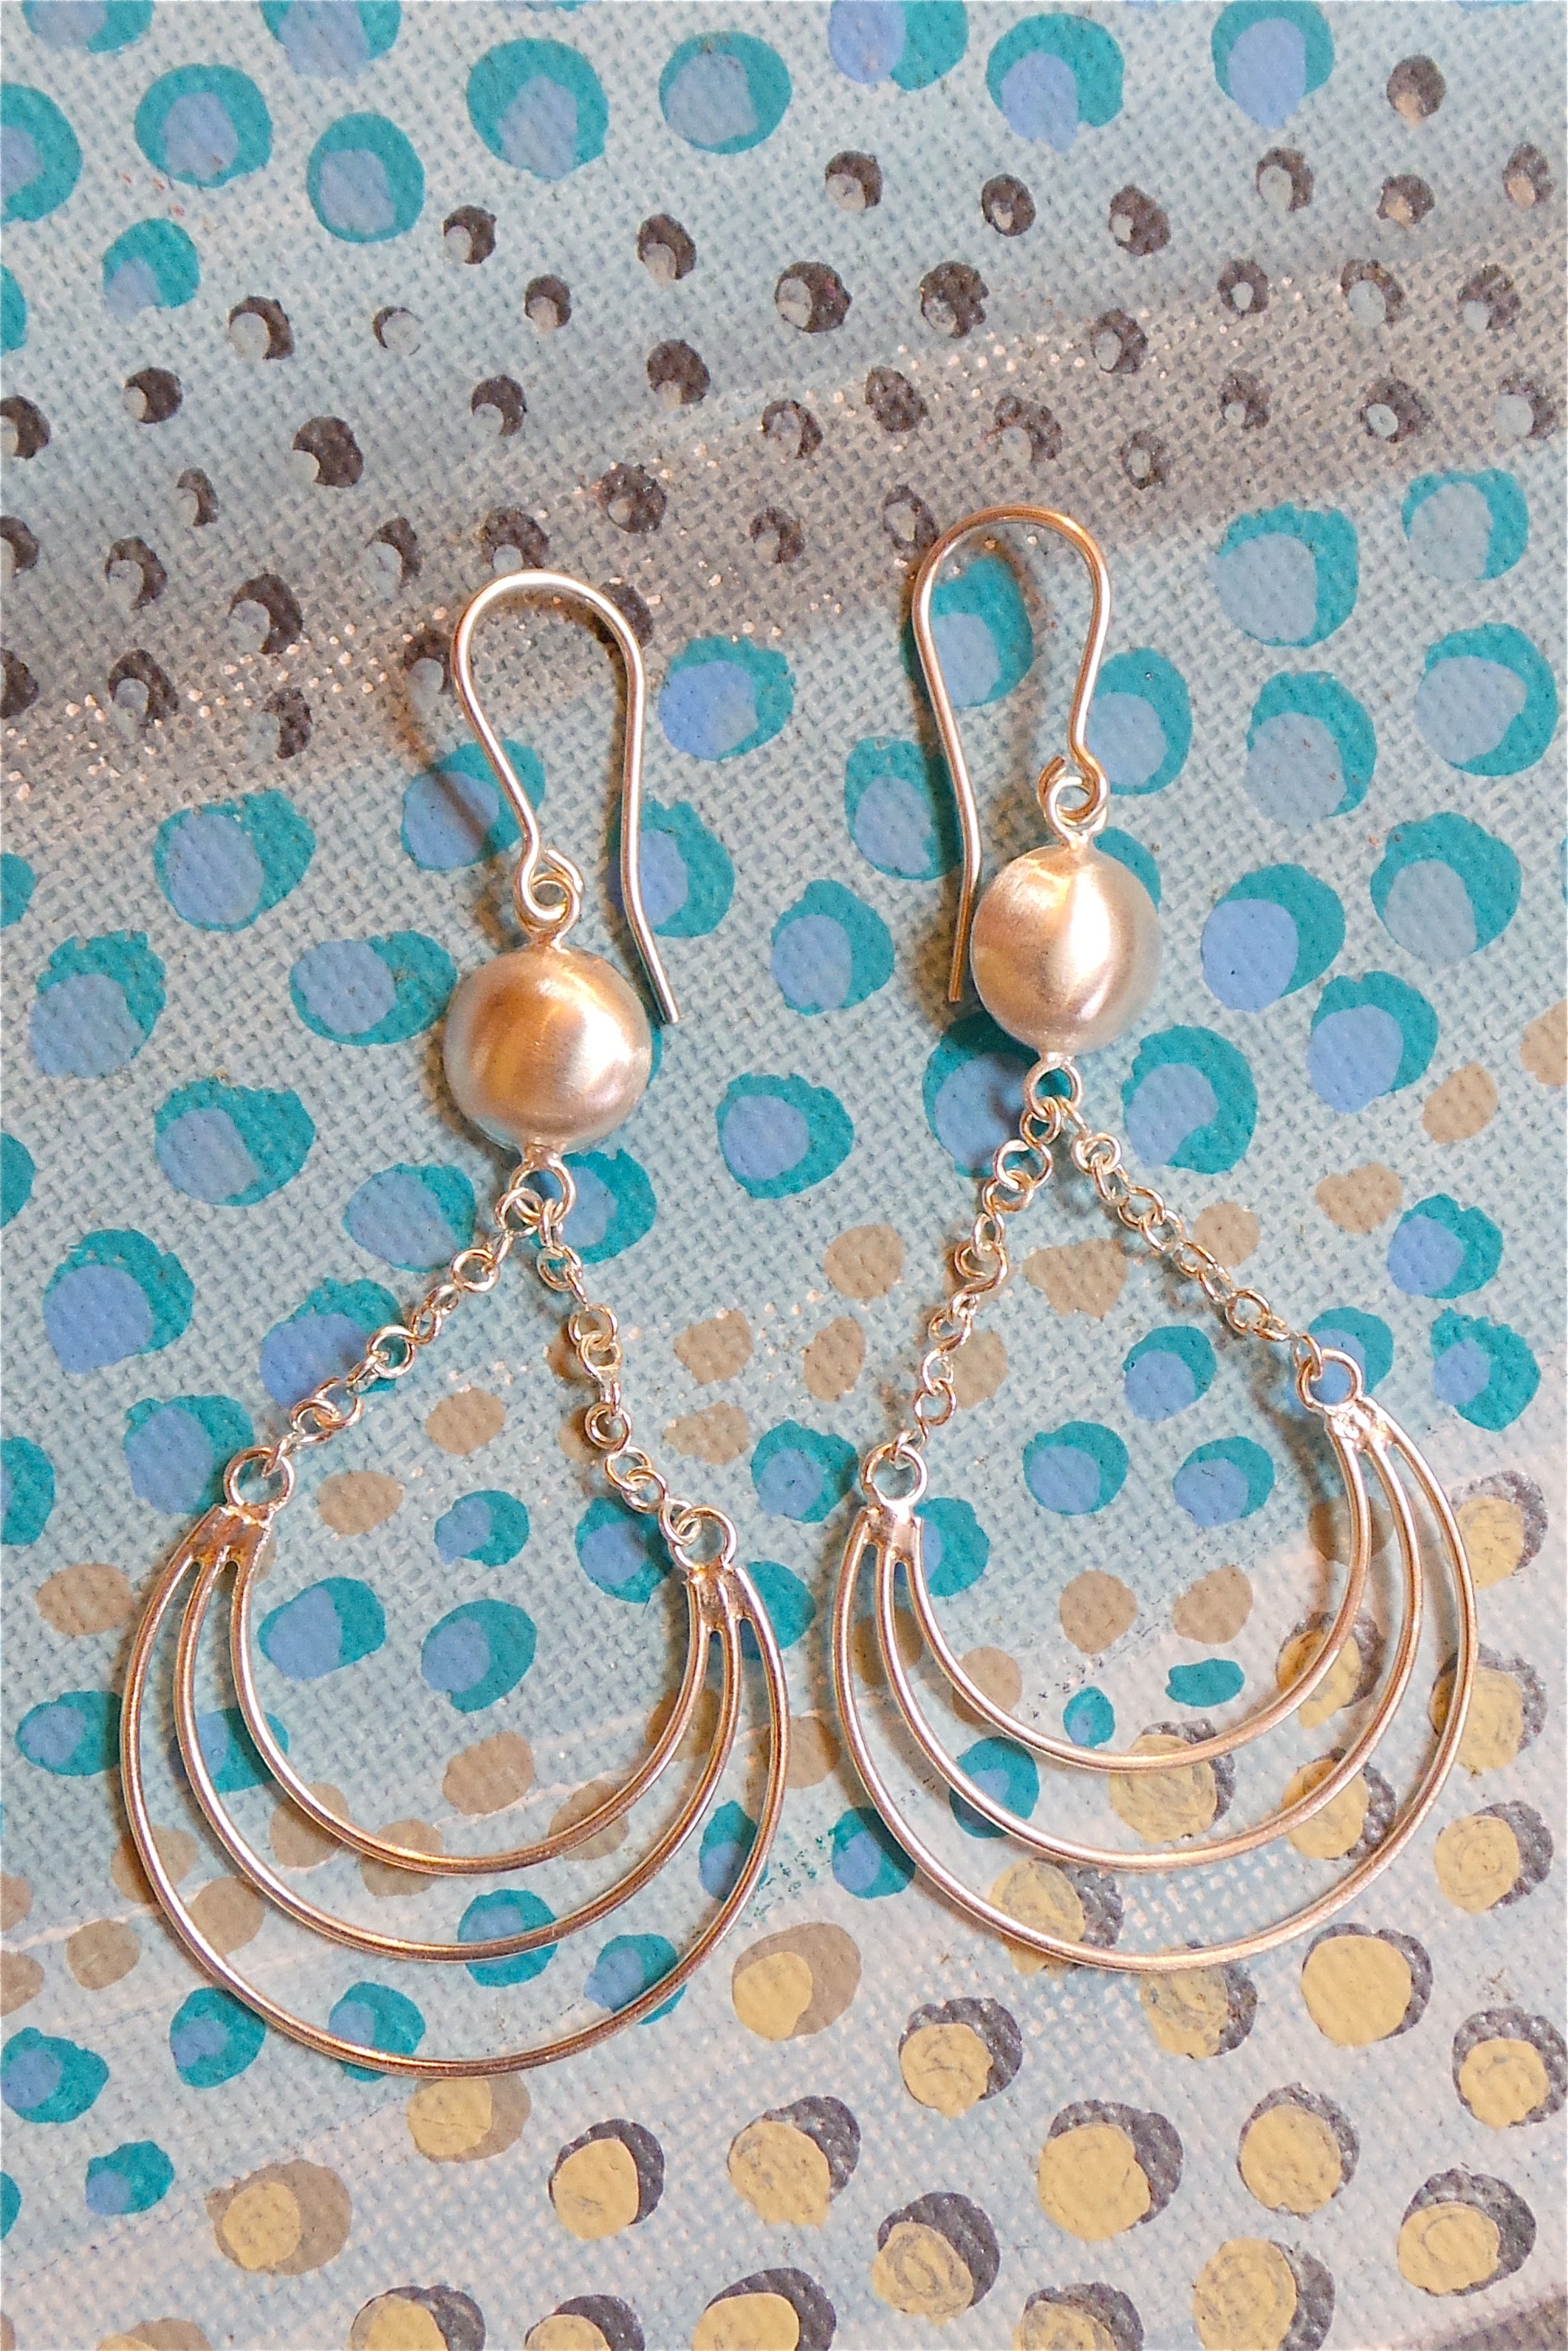 Silver Wire Domed Earring, 925 Silver Brushed Satin Finish Earrings